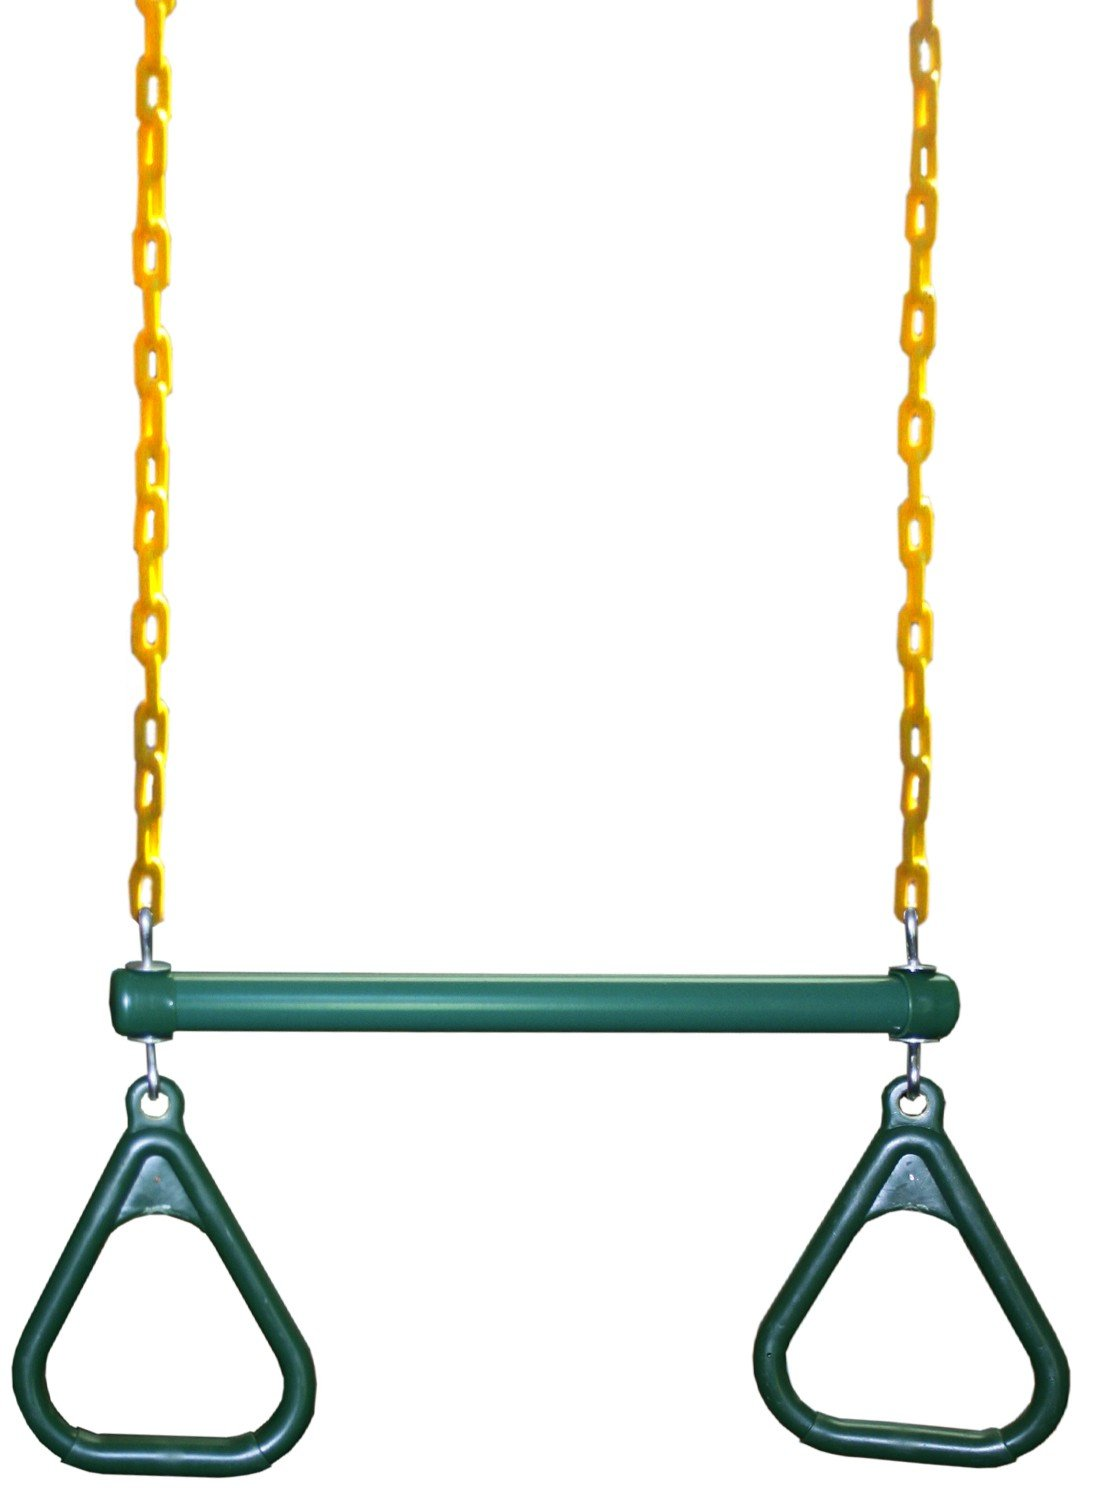 Eastern Jungle Gym Heavy-Duty Ring Trapeze Bar Combo Swing ,Large 20'' Trapeze Bar with Coated Swing Chains 43'' Long by Eastern Jungle Gym